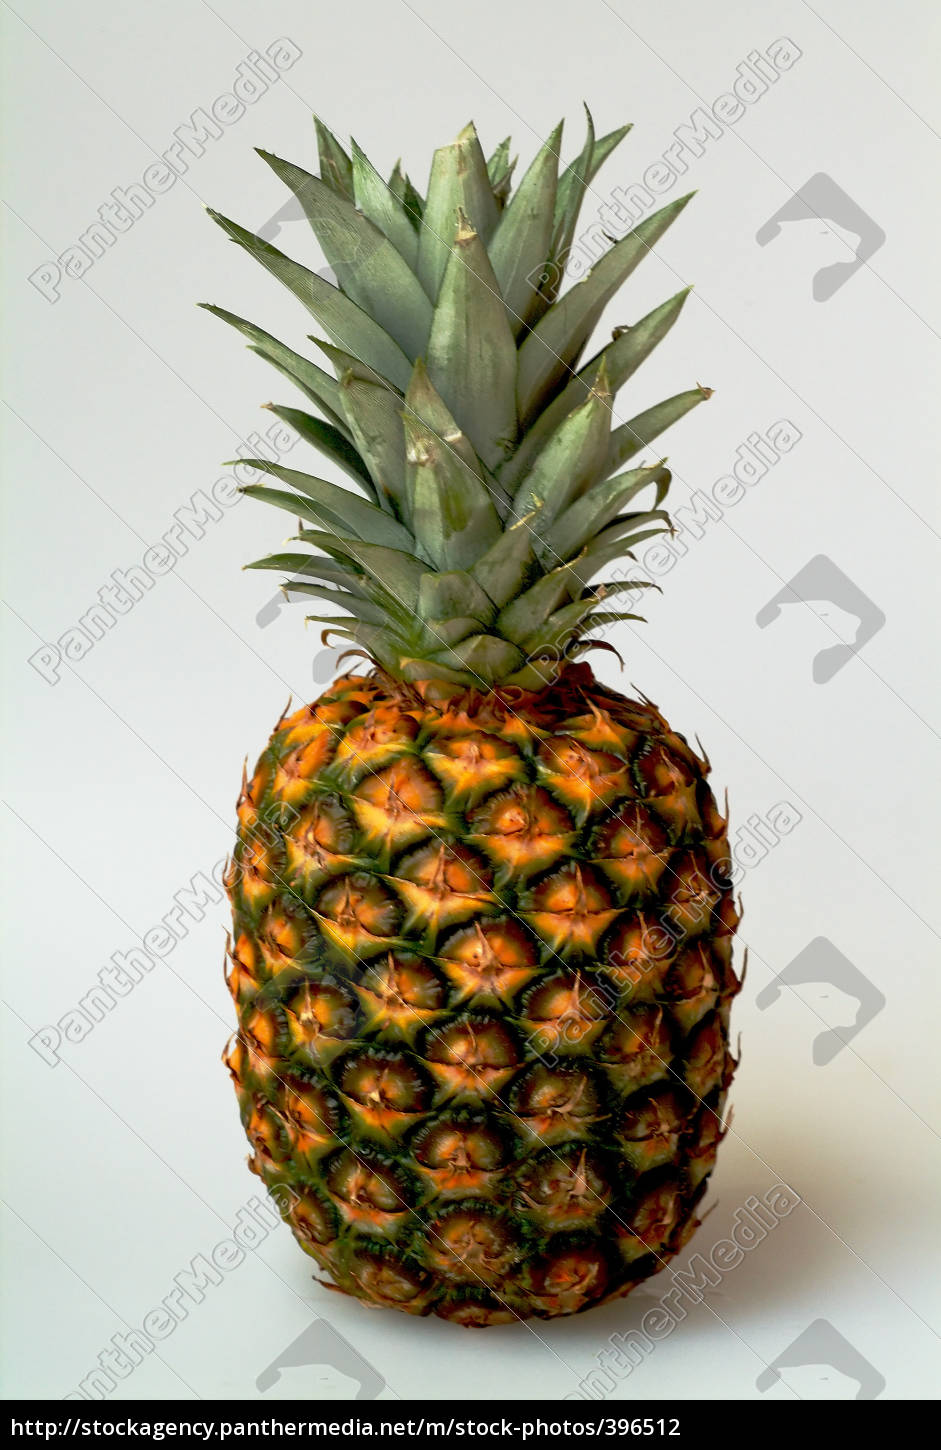 exempted, pineapple - 396512